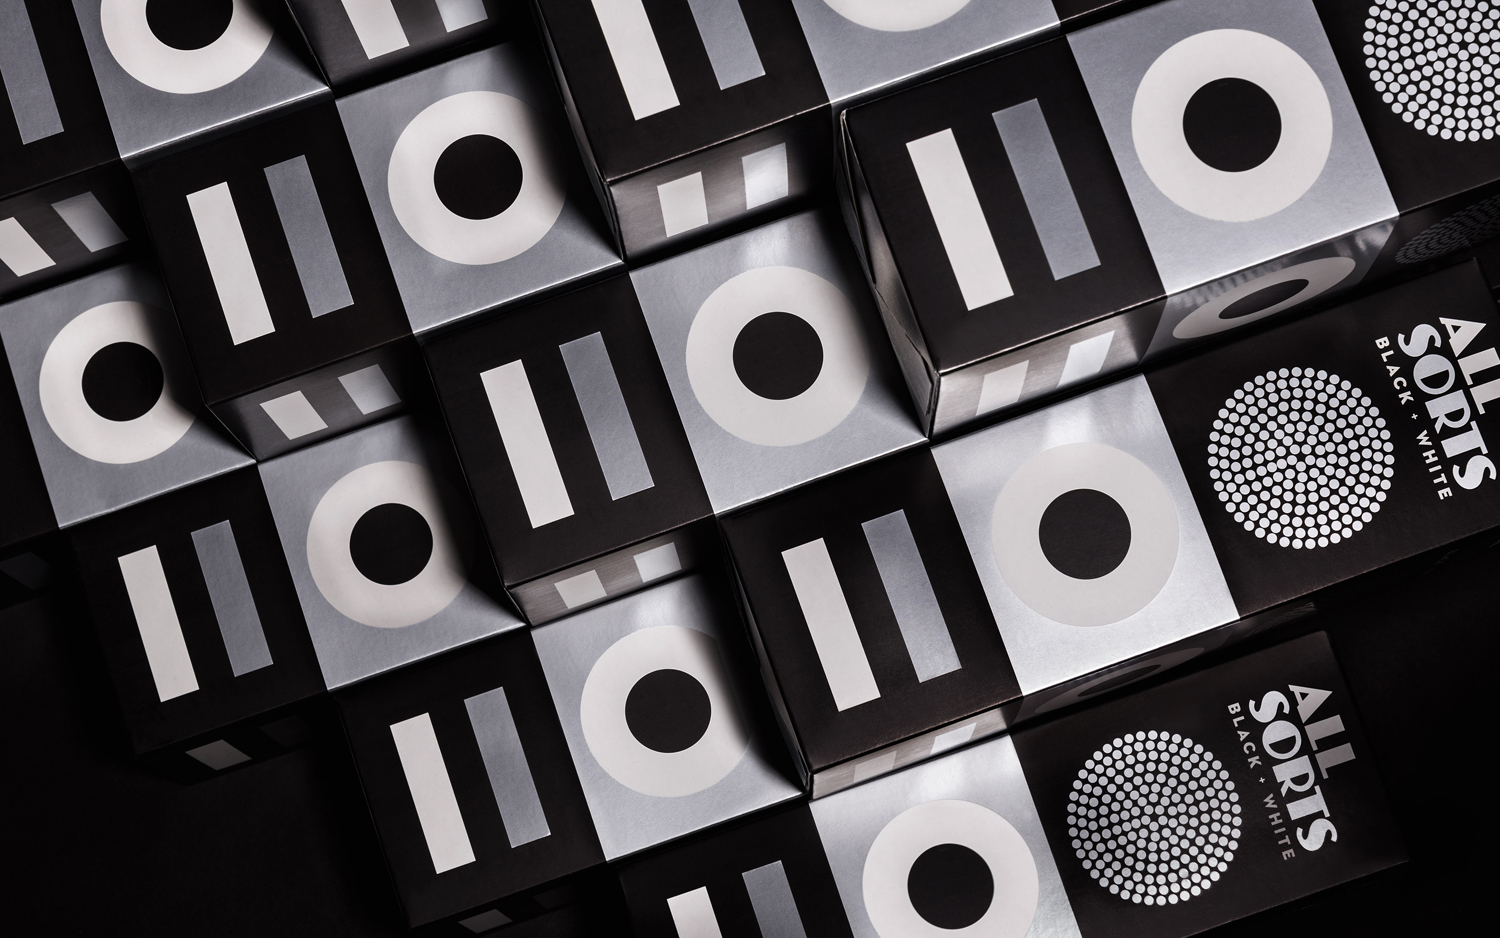 Packaging for liquorice brand Allsorts Black & White by Bond